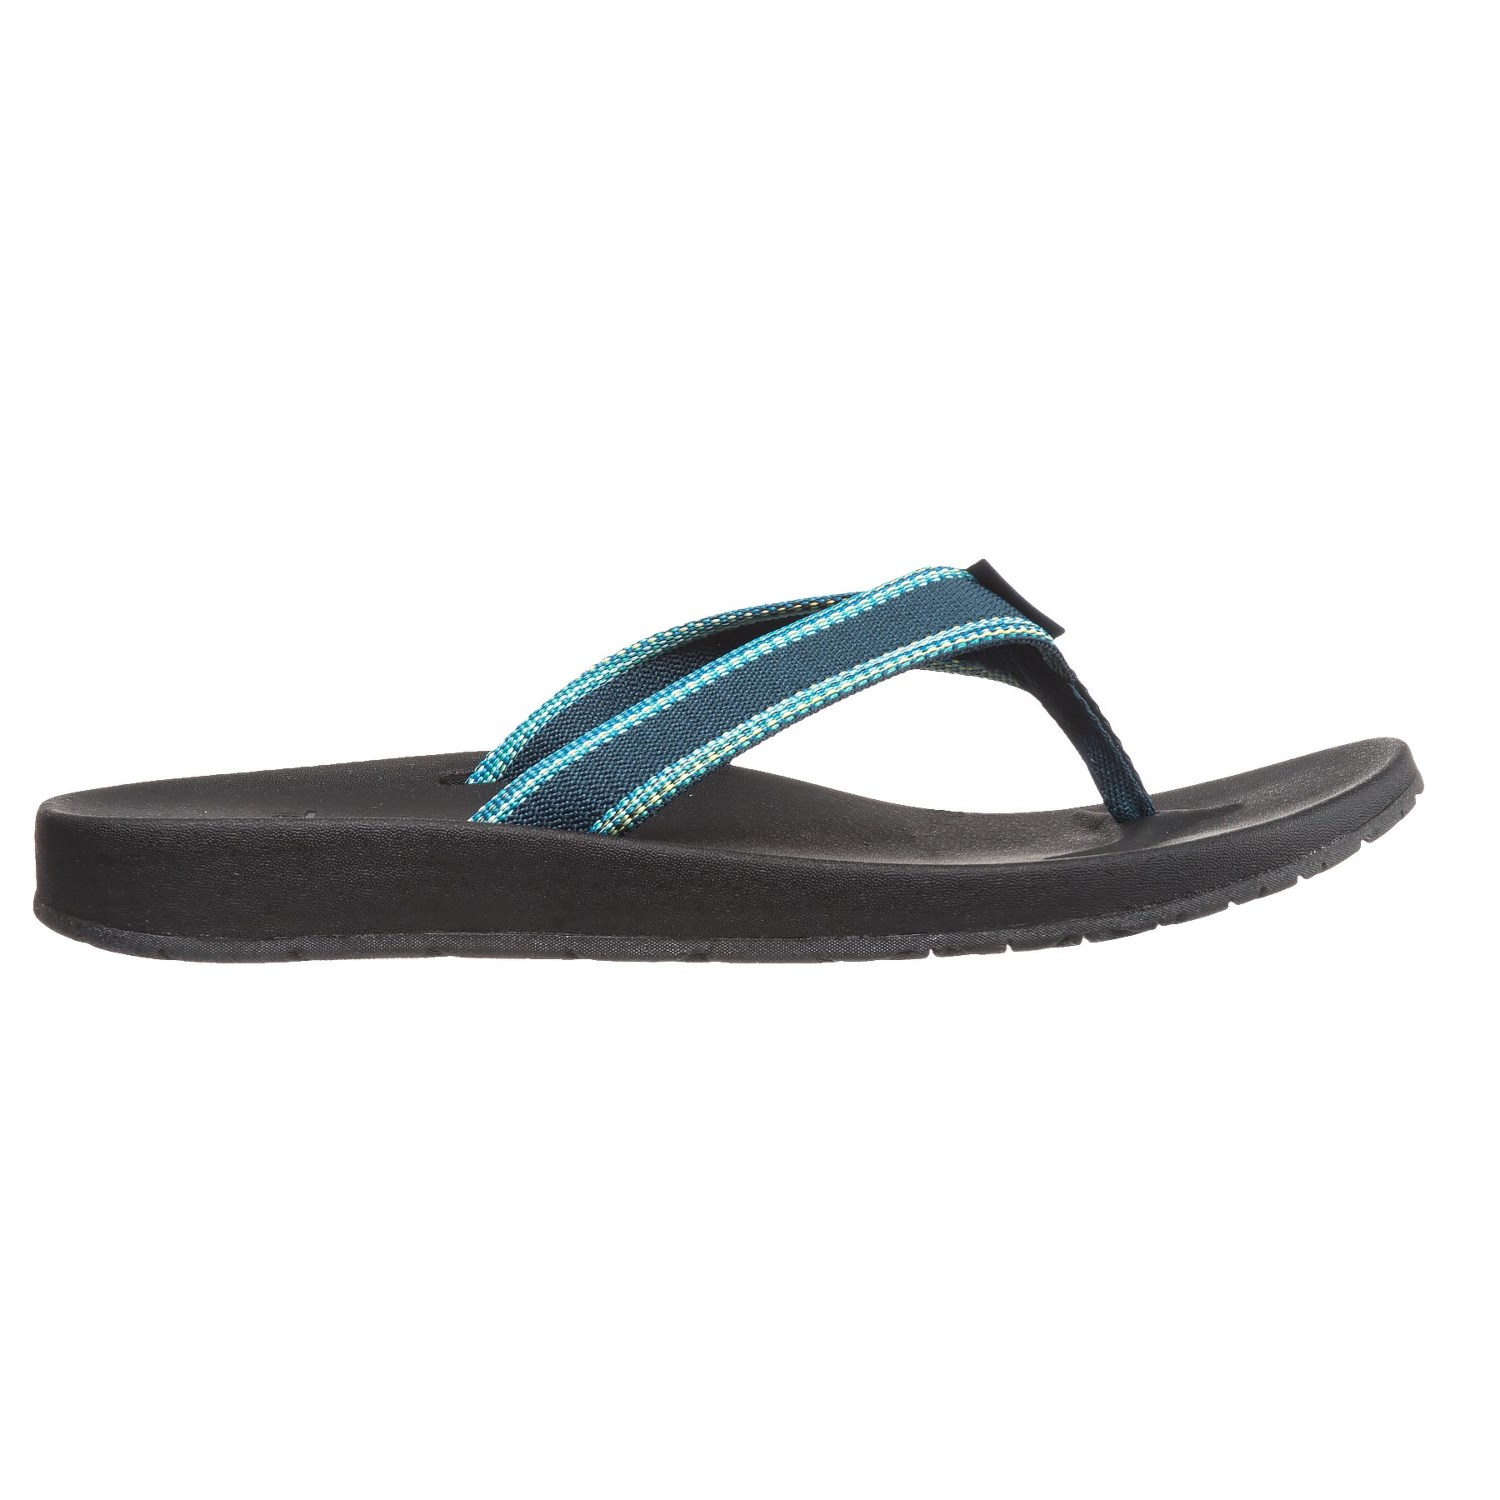 ea9f3e8f8d6e Teva Azure Flip-Flops (For Women) - Save 62%